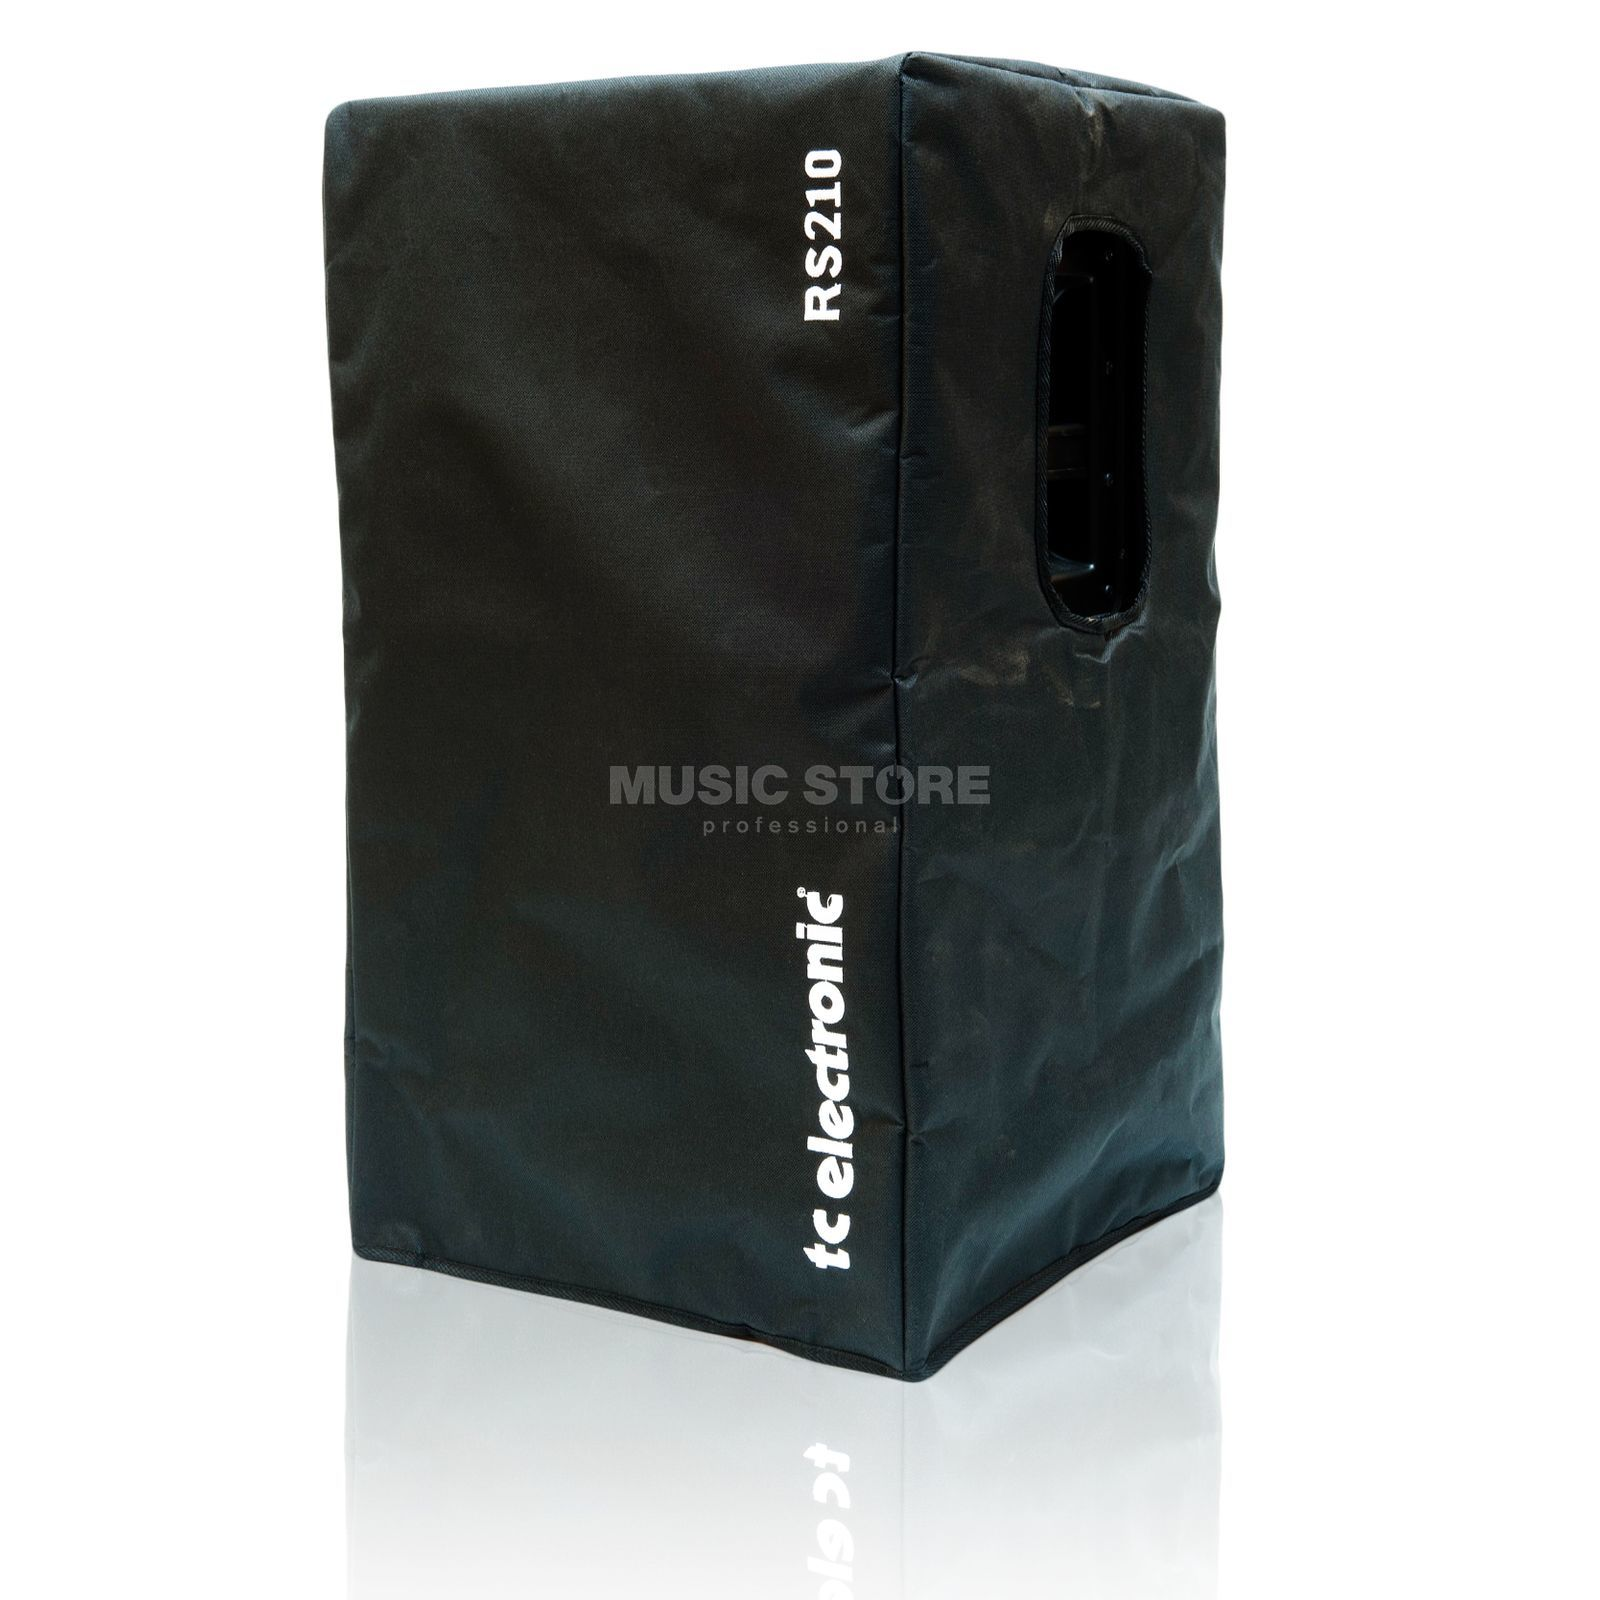 TC Electronic Soft Cover RS 210 Cab Produktbild